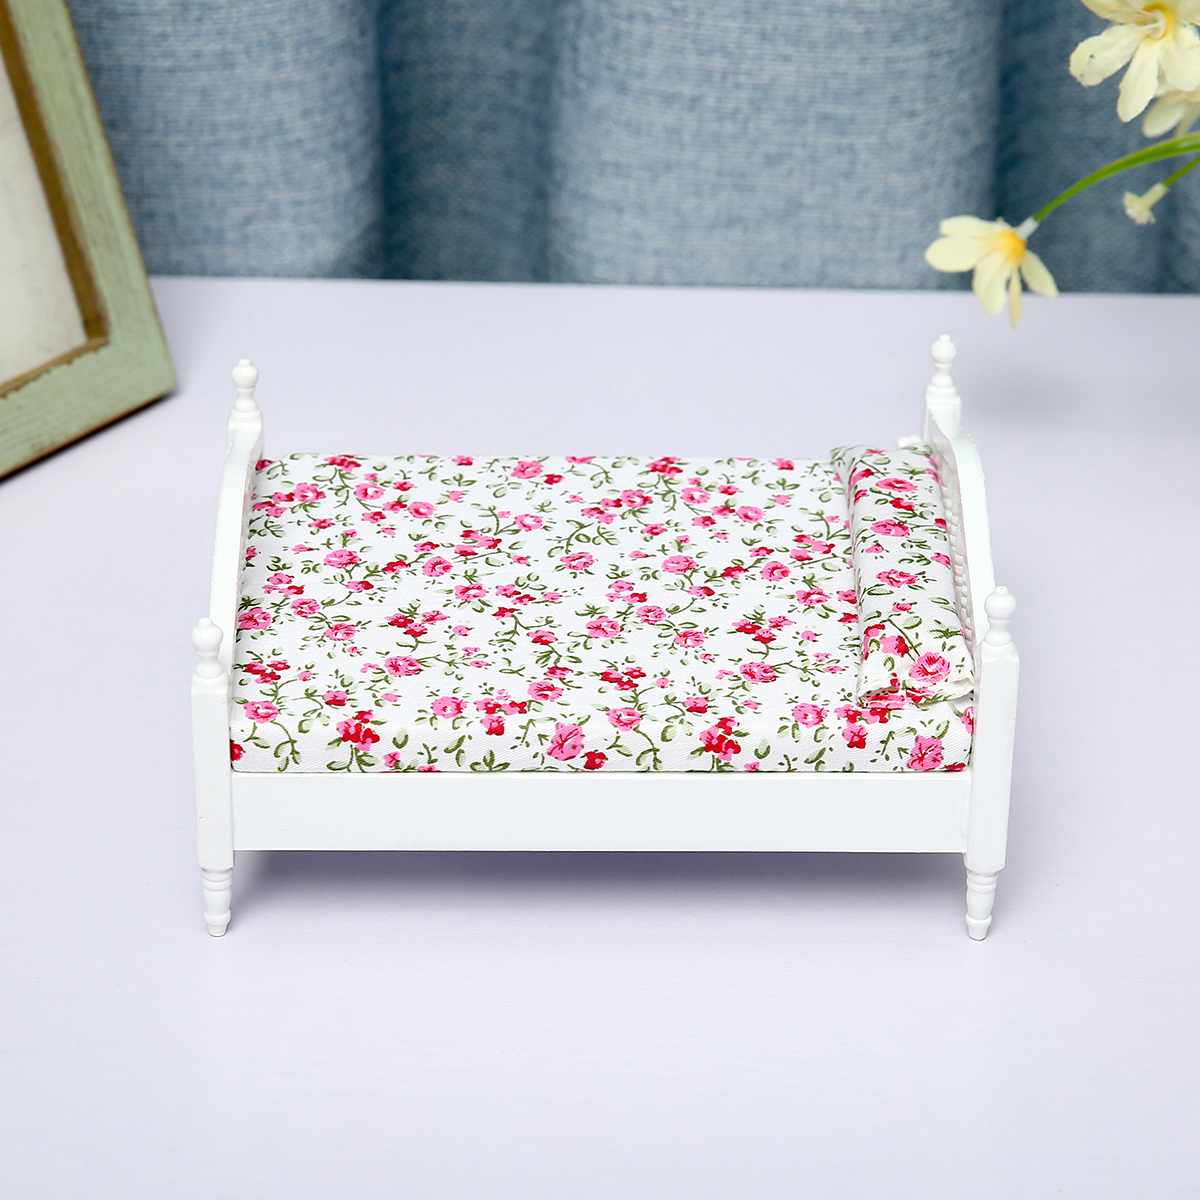 1:12 Handicraft Mini Bed With Pillow For Girls Dolls Dollhouse Bedroom Furniture Pink Color Toy For Children Doll Pretend Play